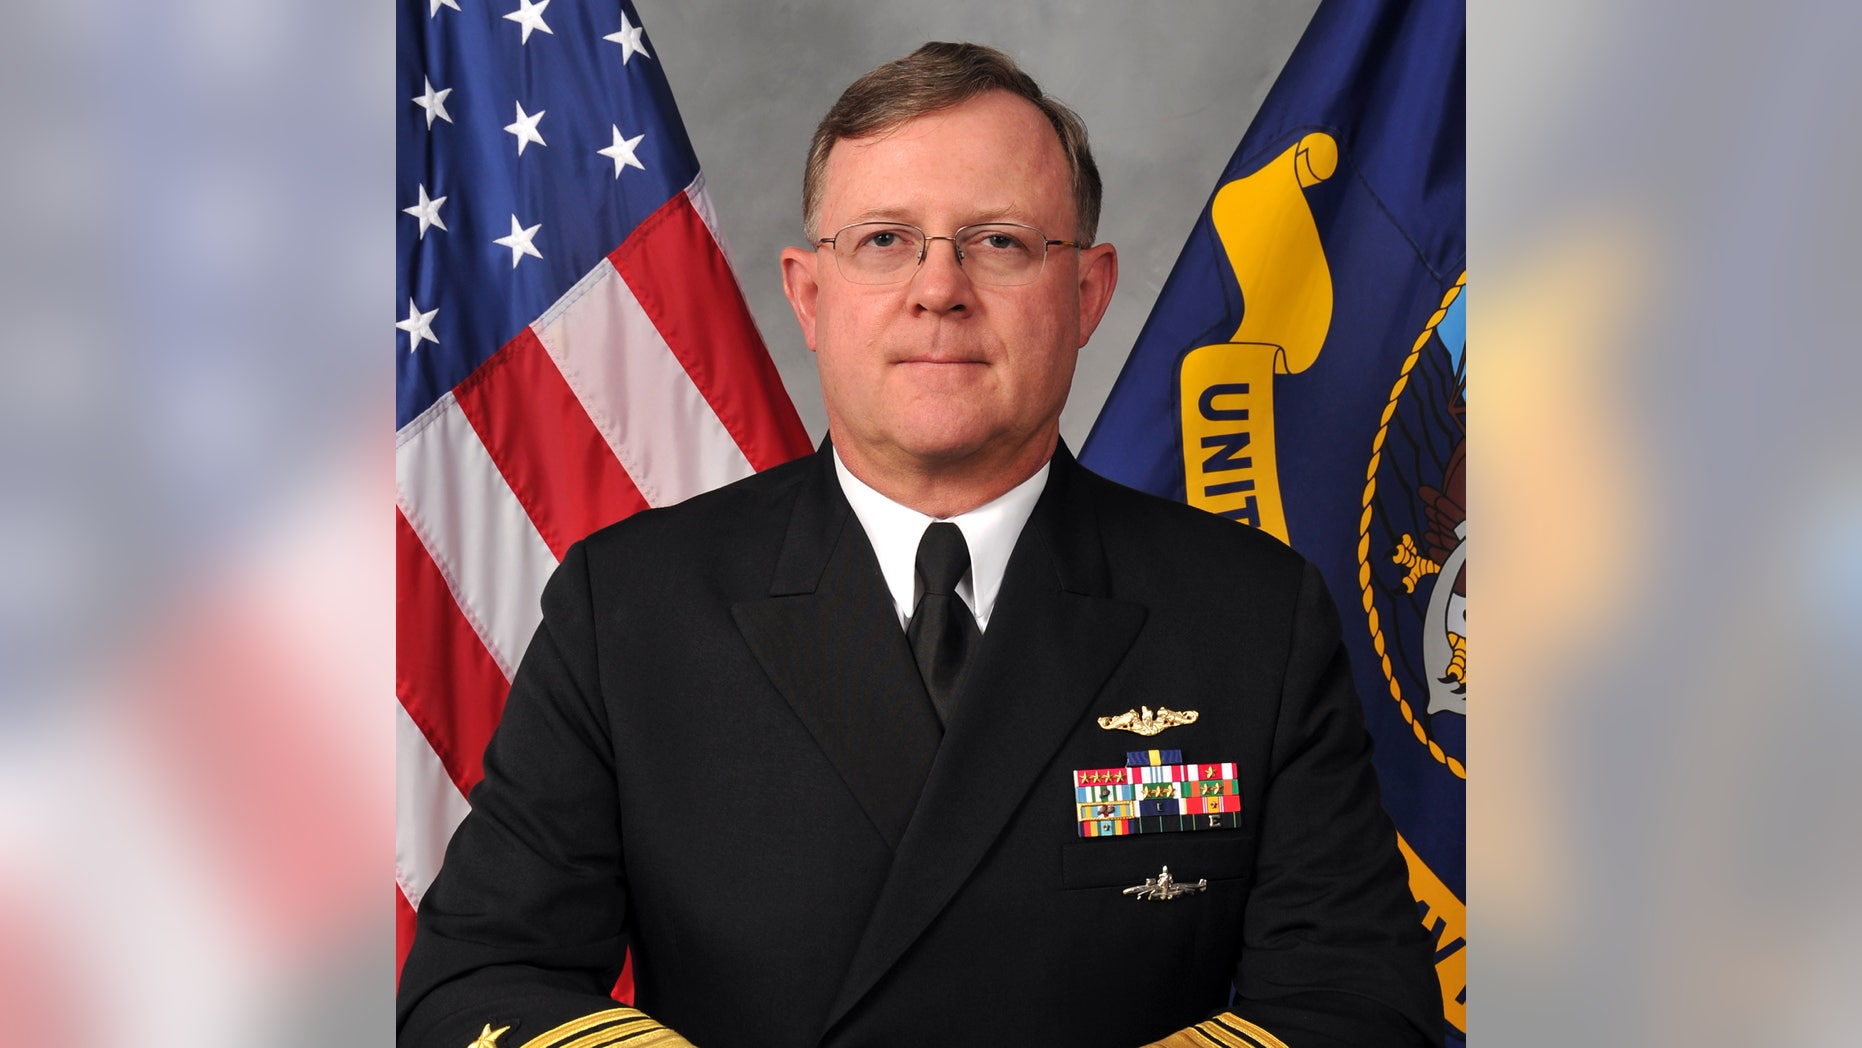 This Image Provided By The US Navy Shows Vice Adm Tim Giardina In A